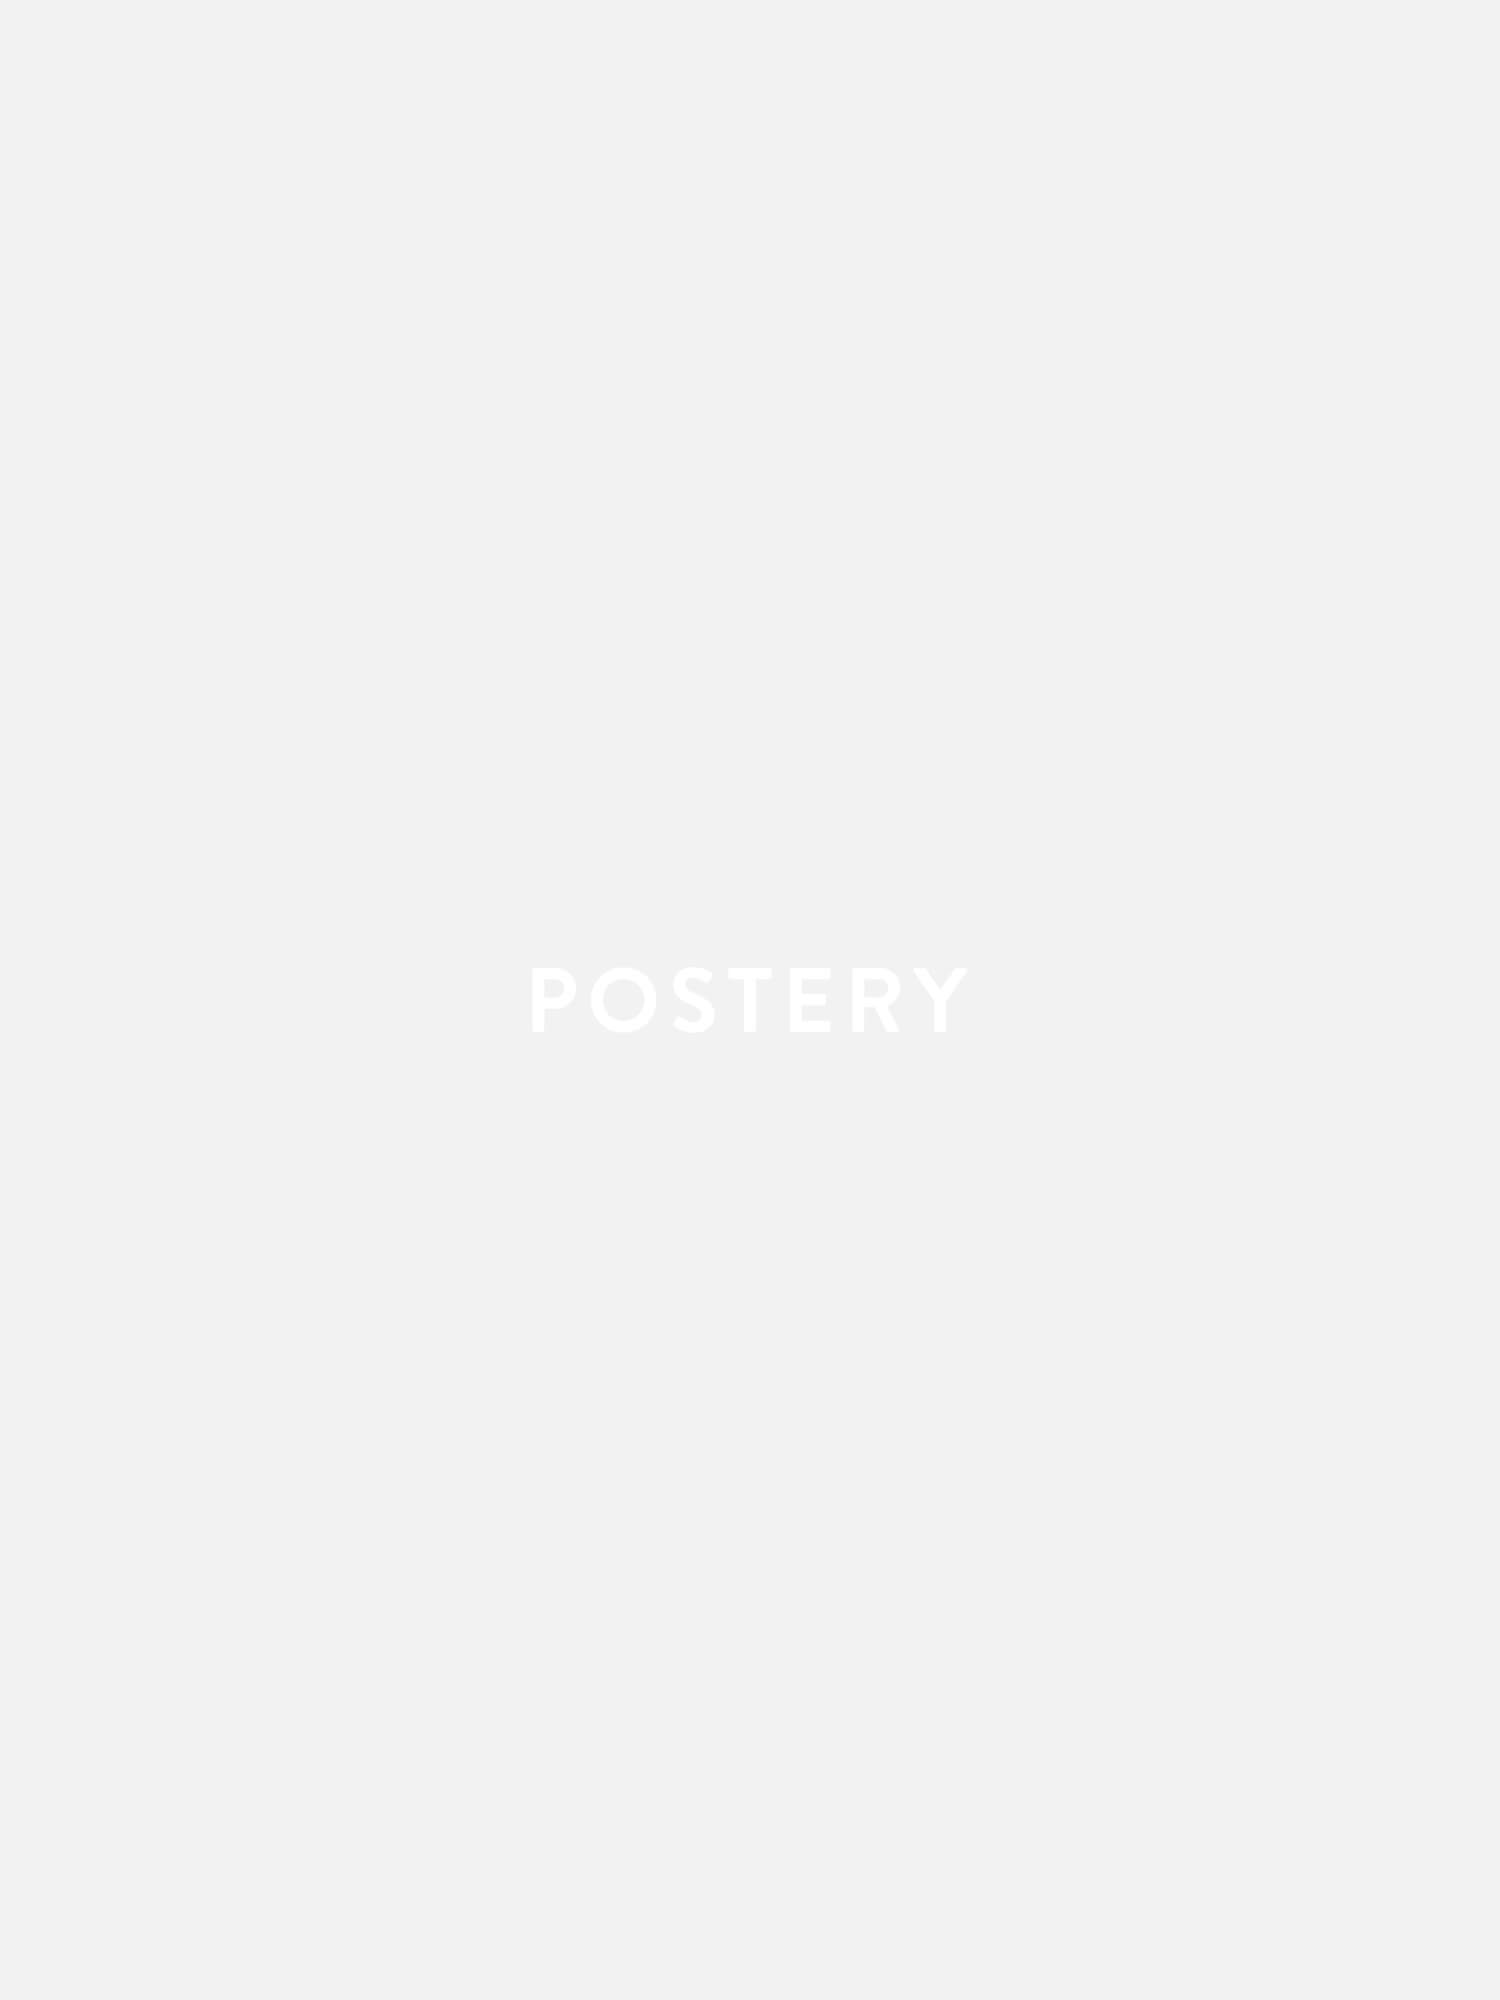 Blinds Body Poster